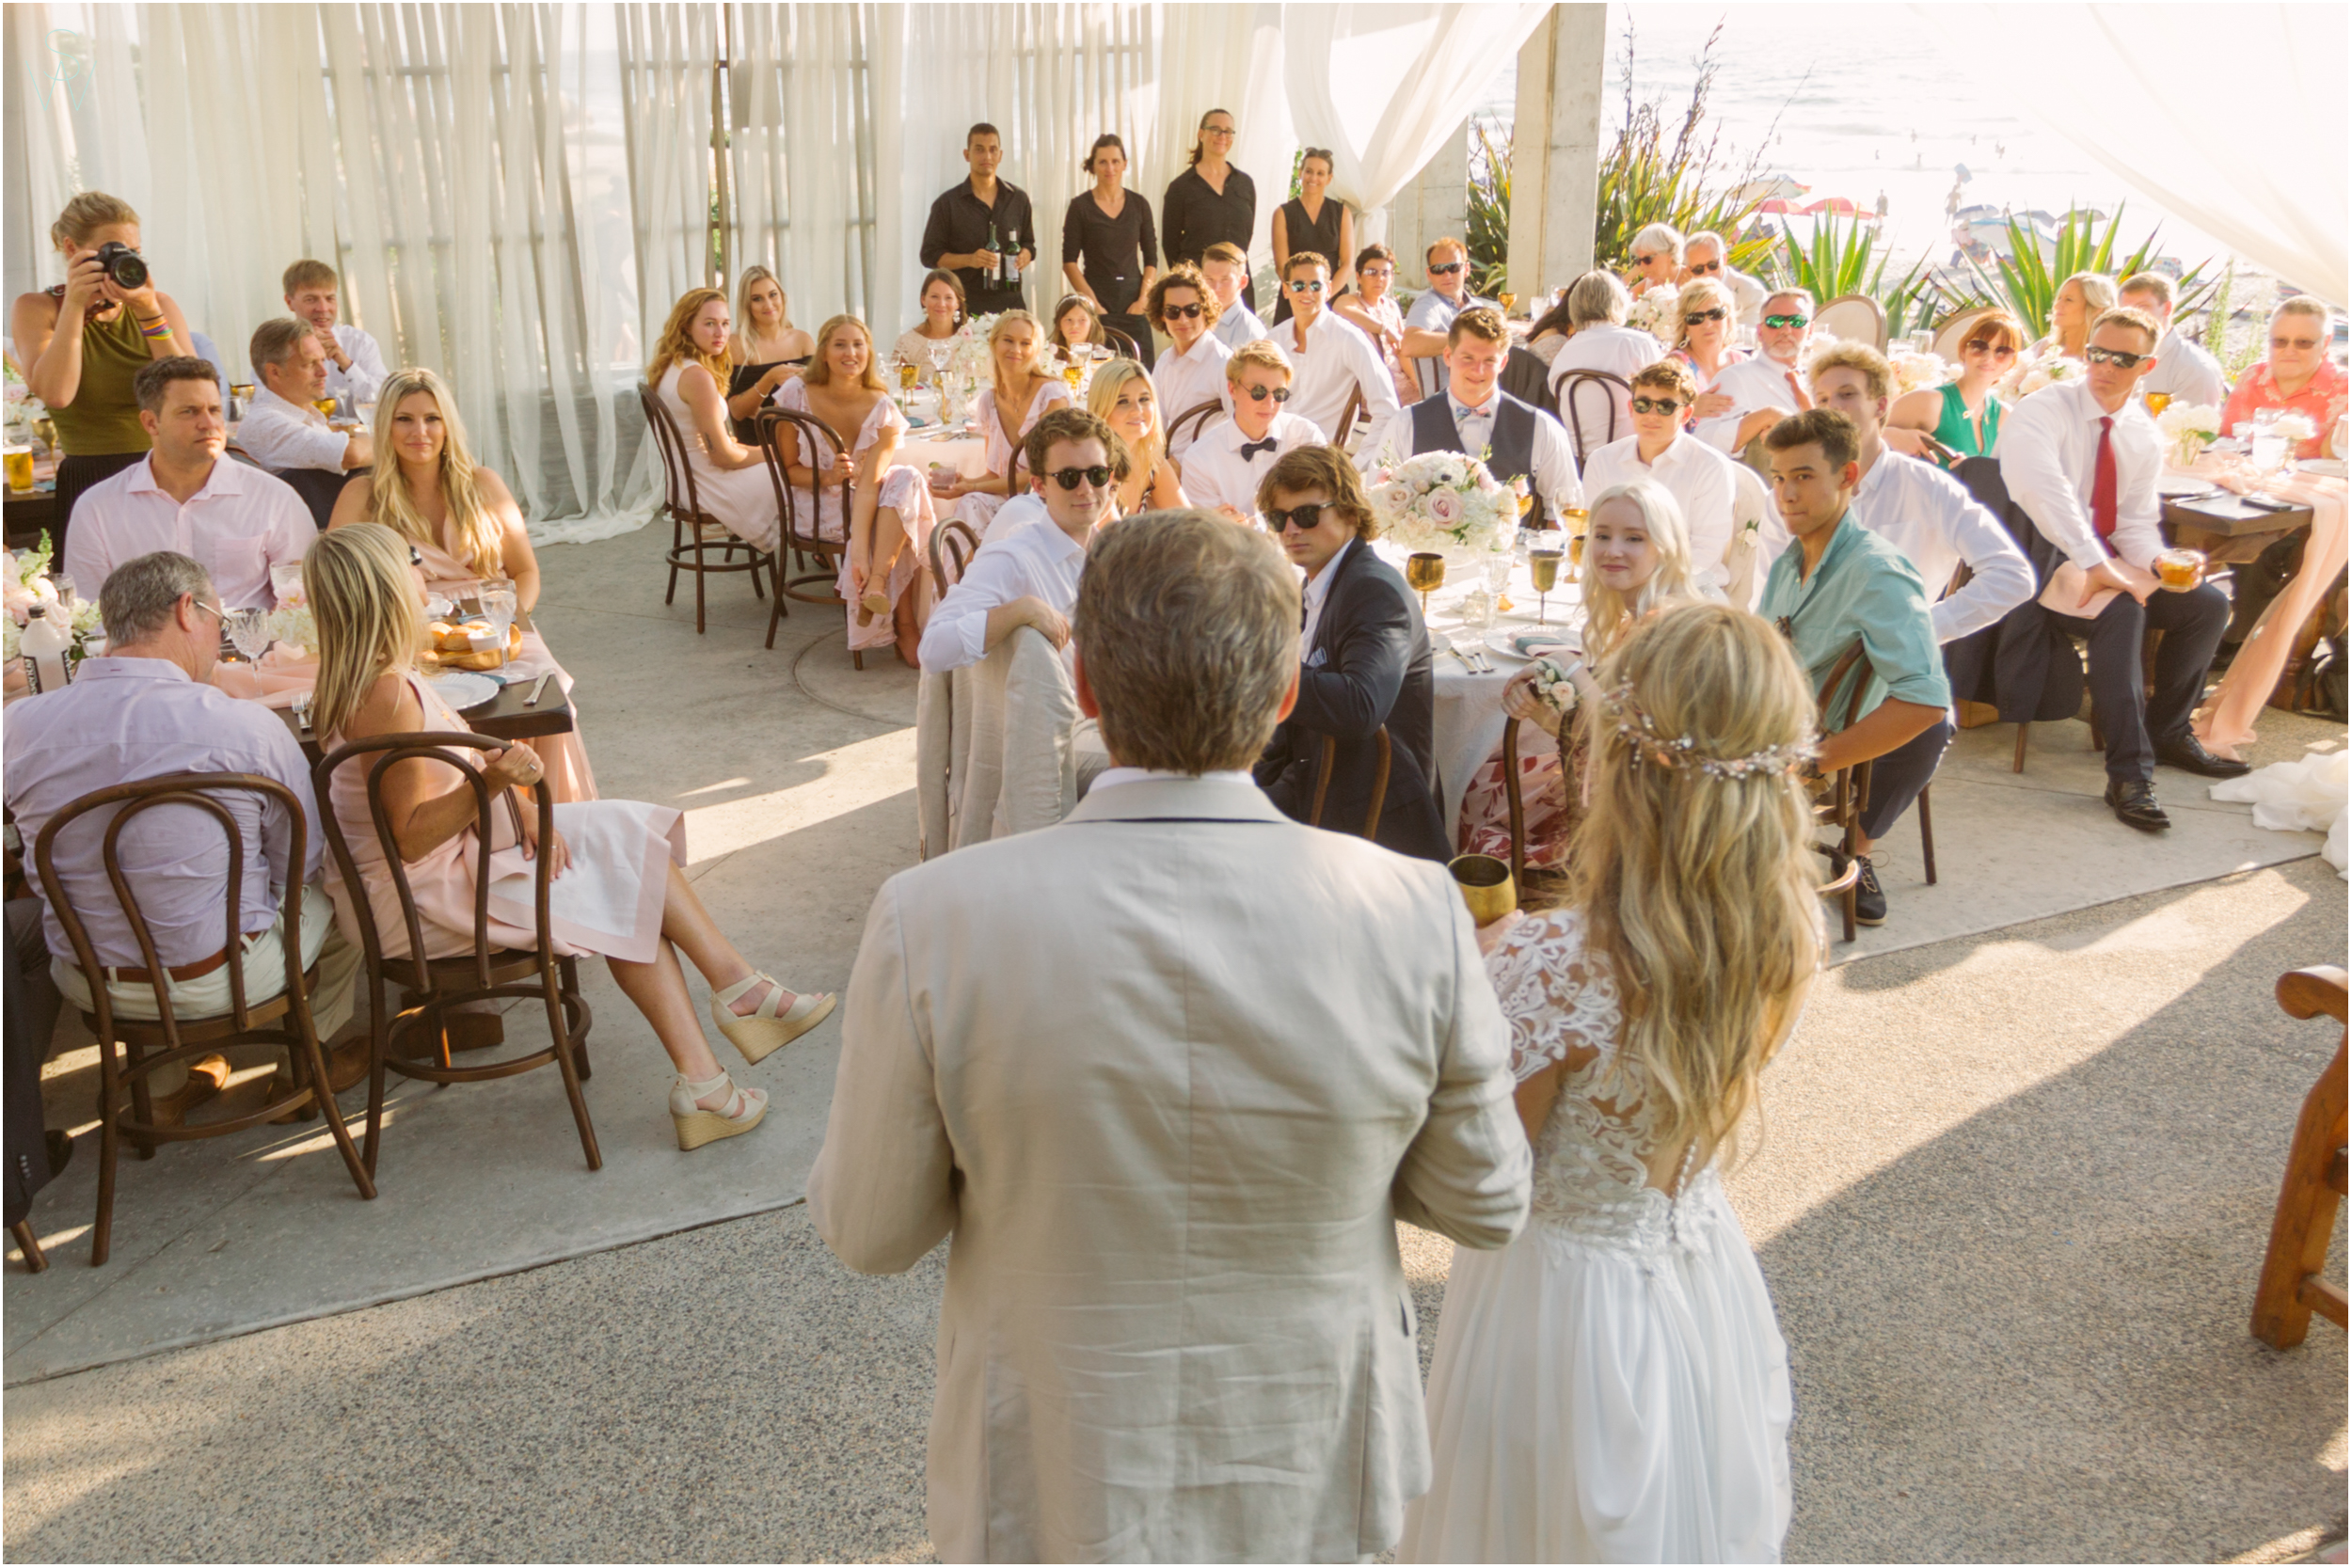 145DEL.MAR.WEDDINGS.weddingreceptionphotography.shewanders.JPG